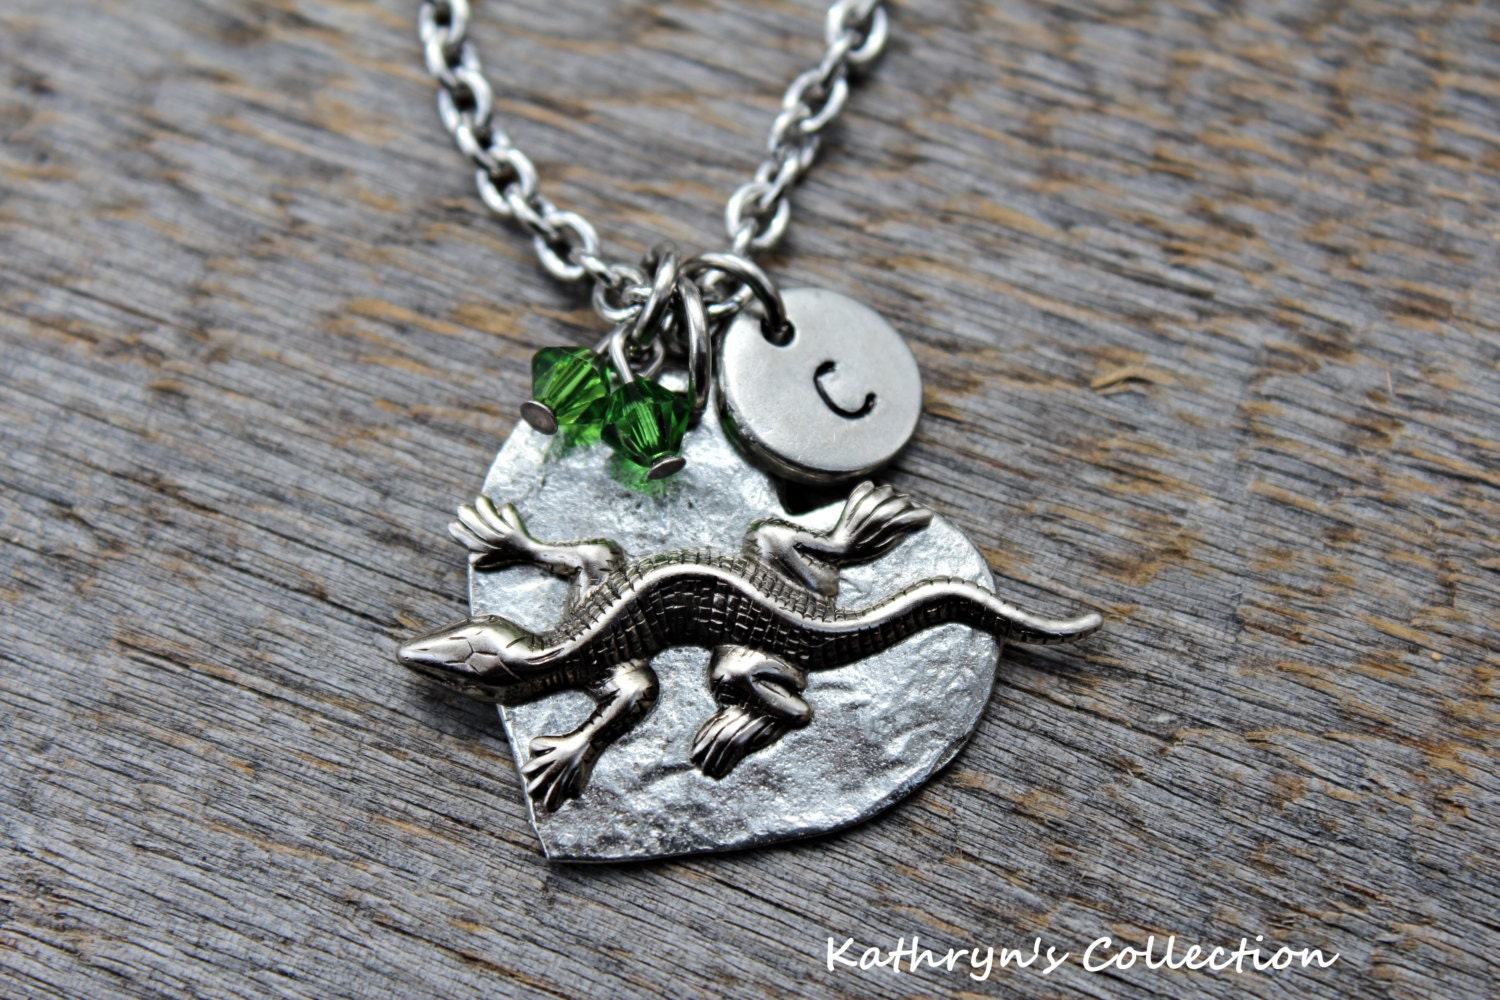 lizard necklace lizard jewelry pet lizard pet salamander